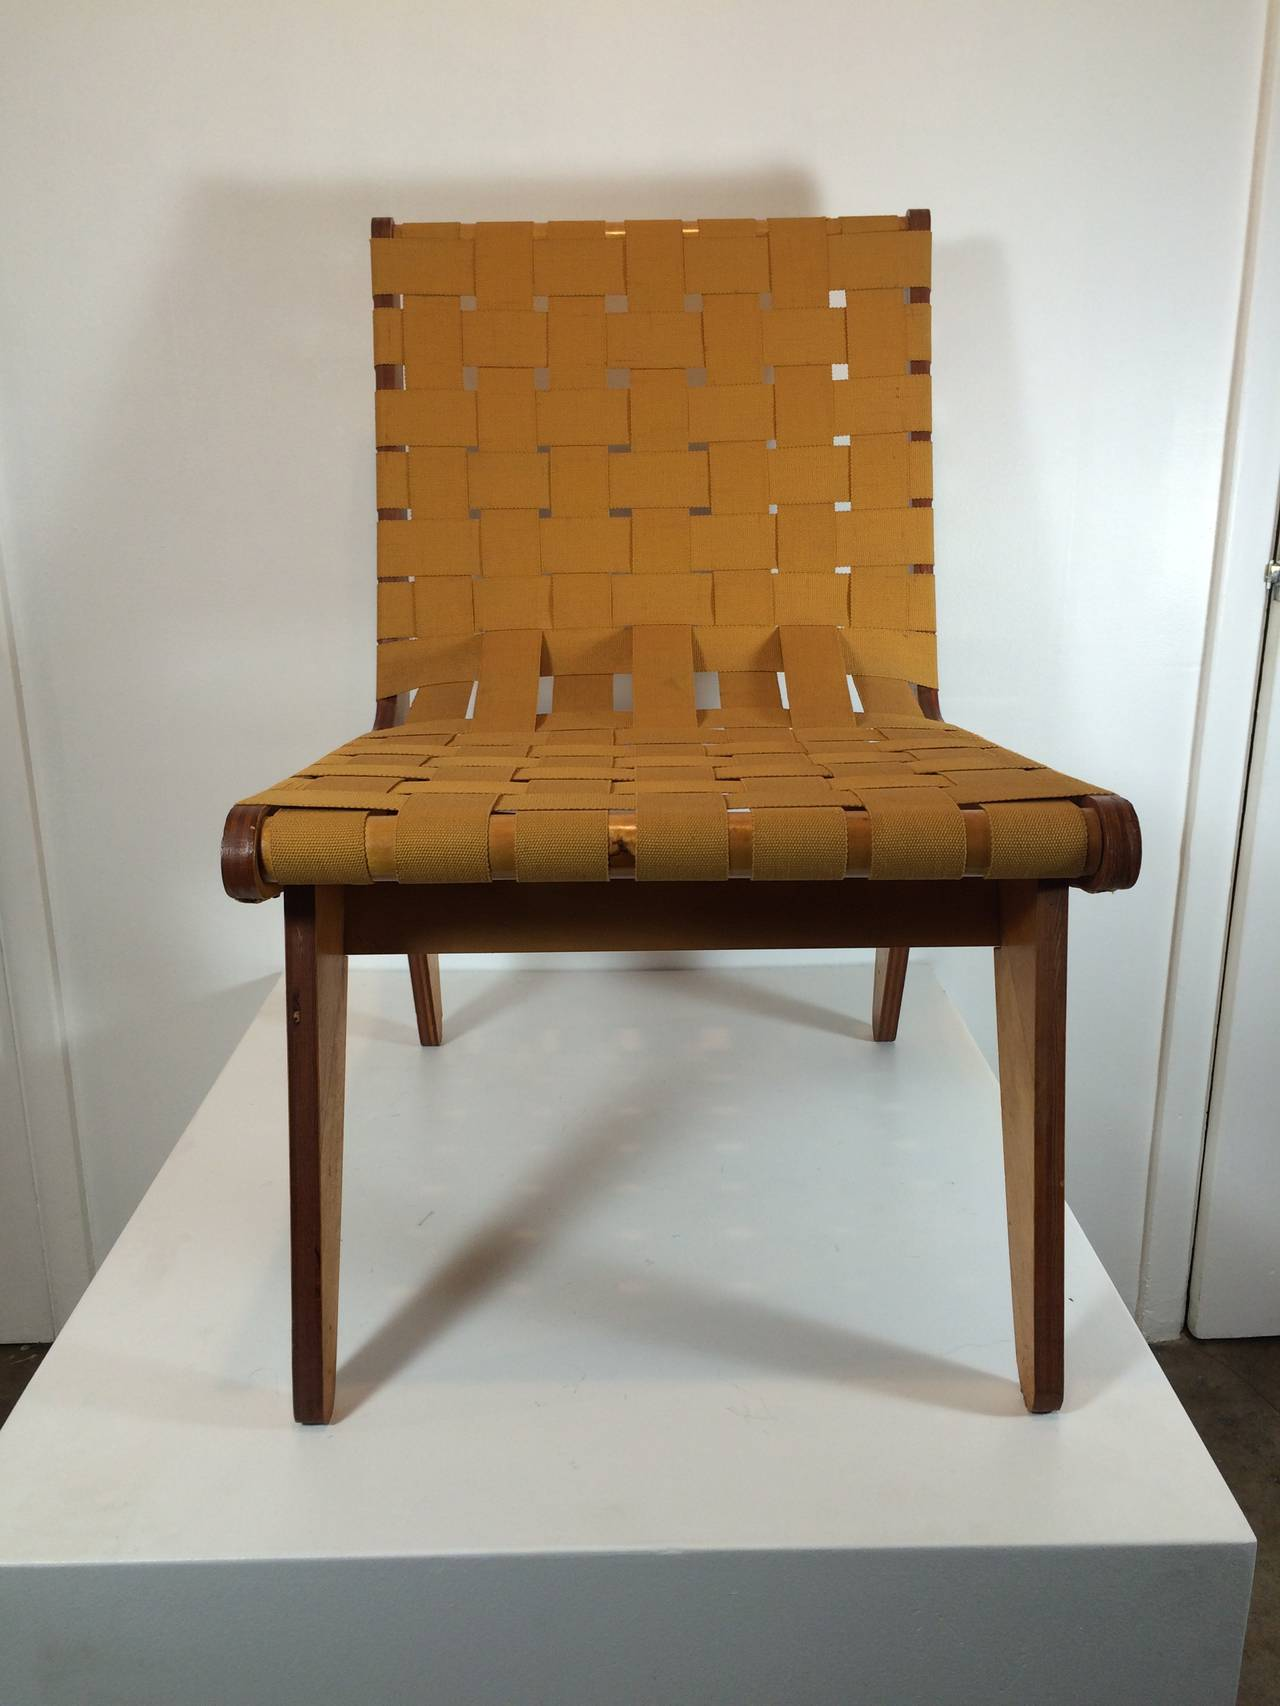 1949 Klaus Grabe Handmade Lounge Chair 2